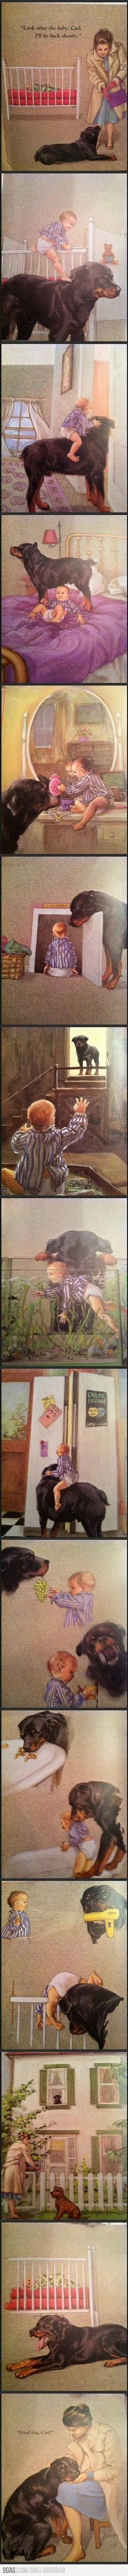 Good Dog Carl - one of my favorite childhood books spotlighting a mischievous rottweiler and a curious baby